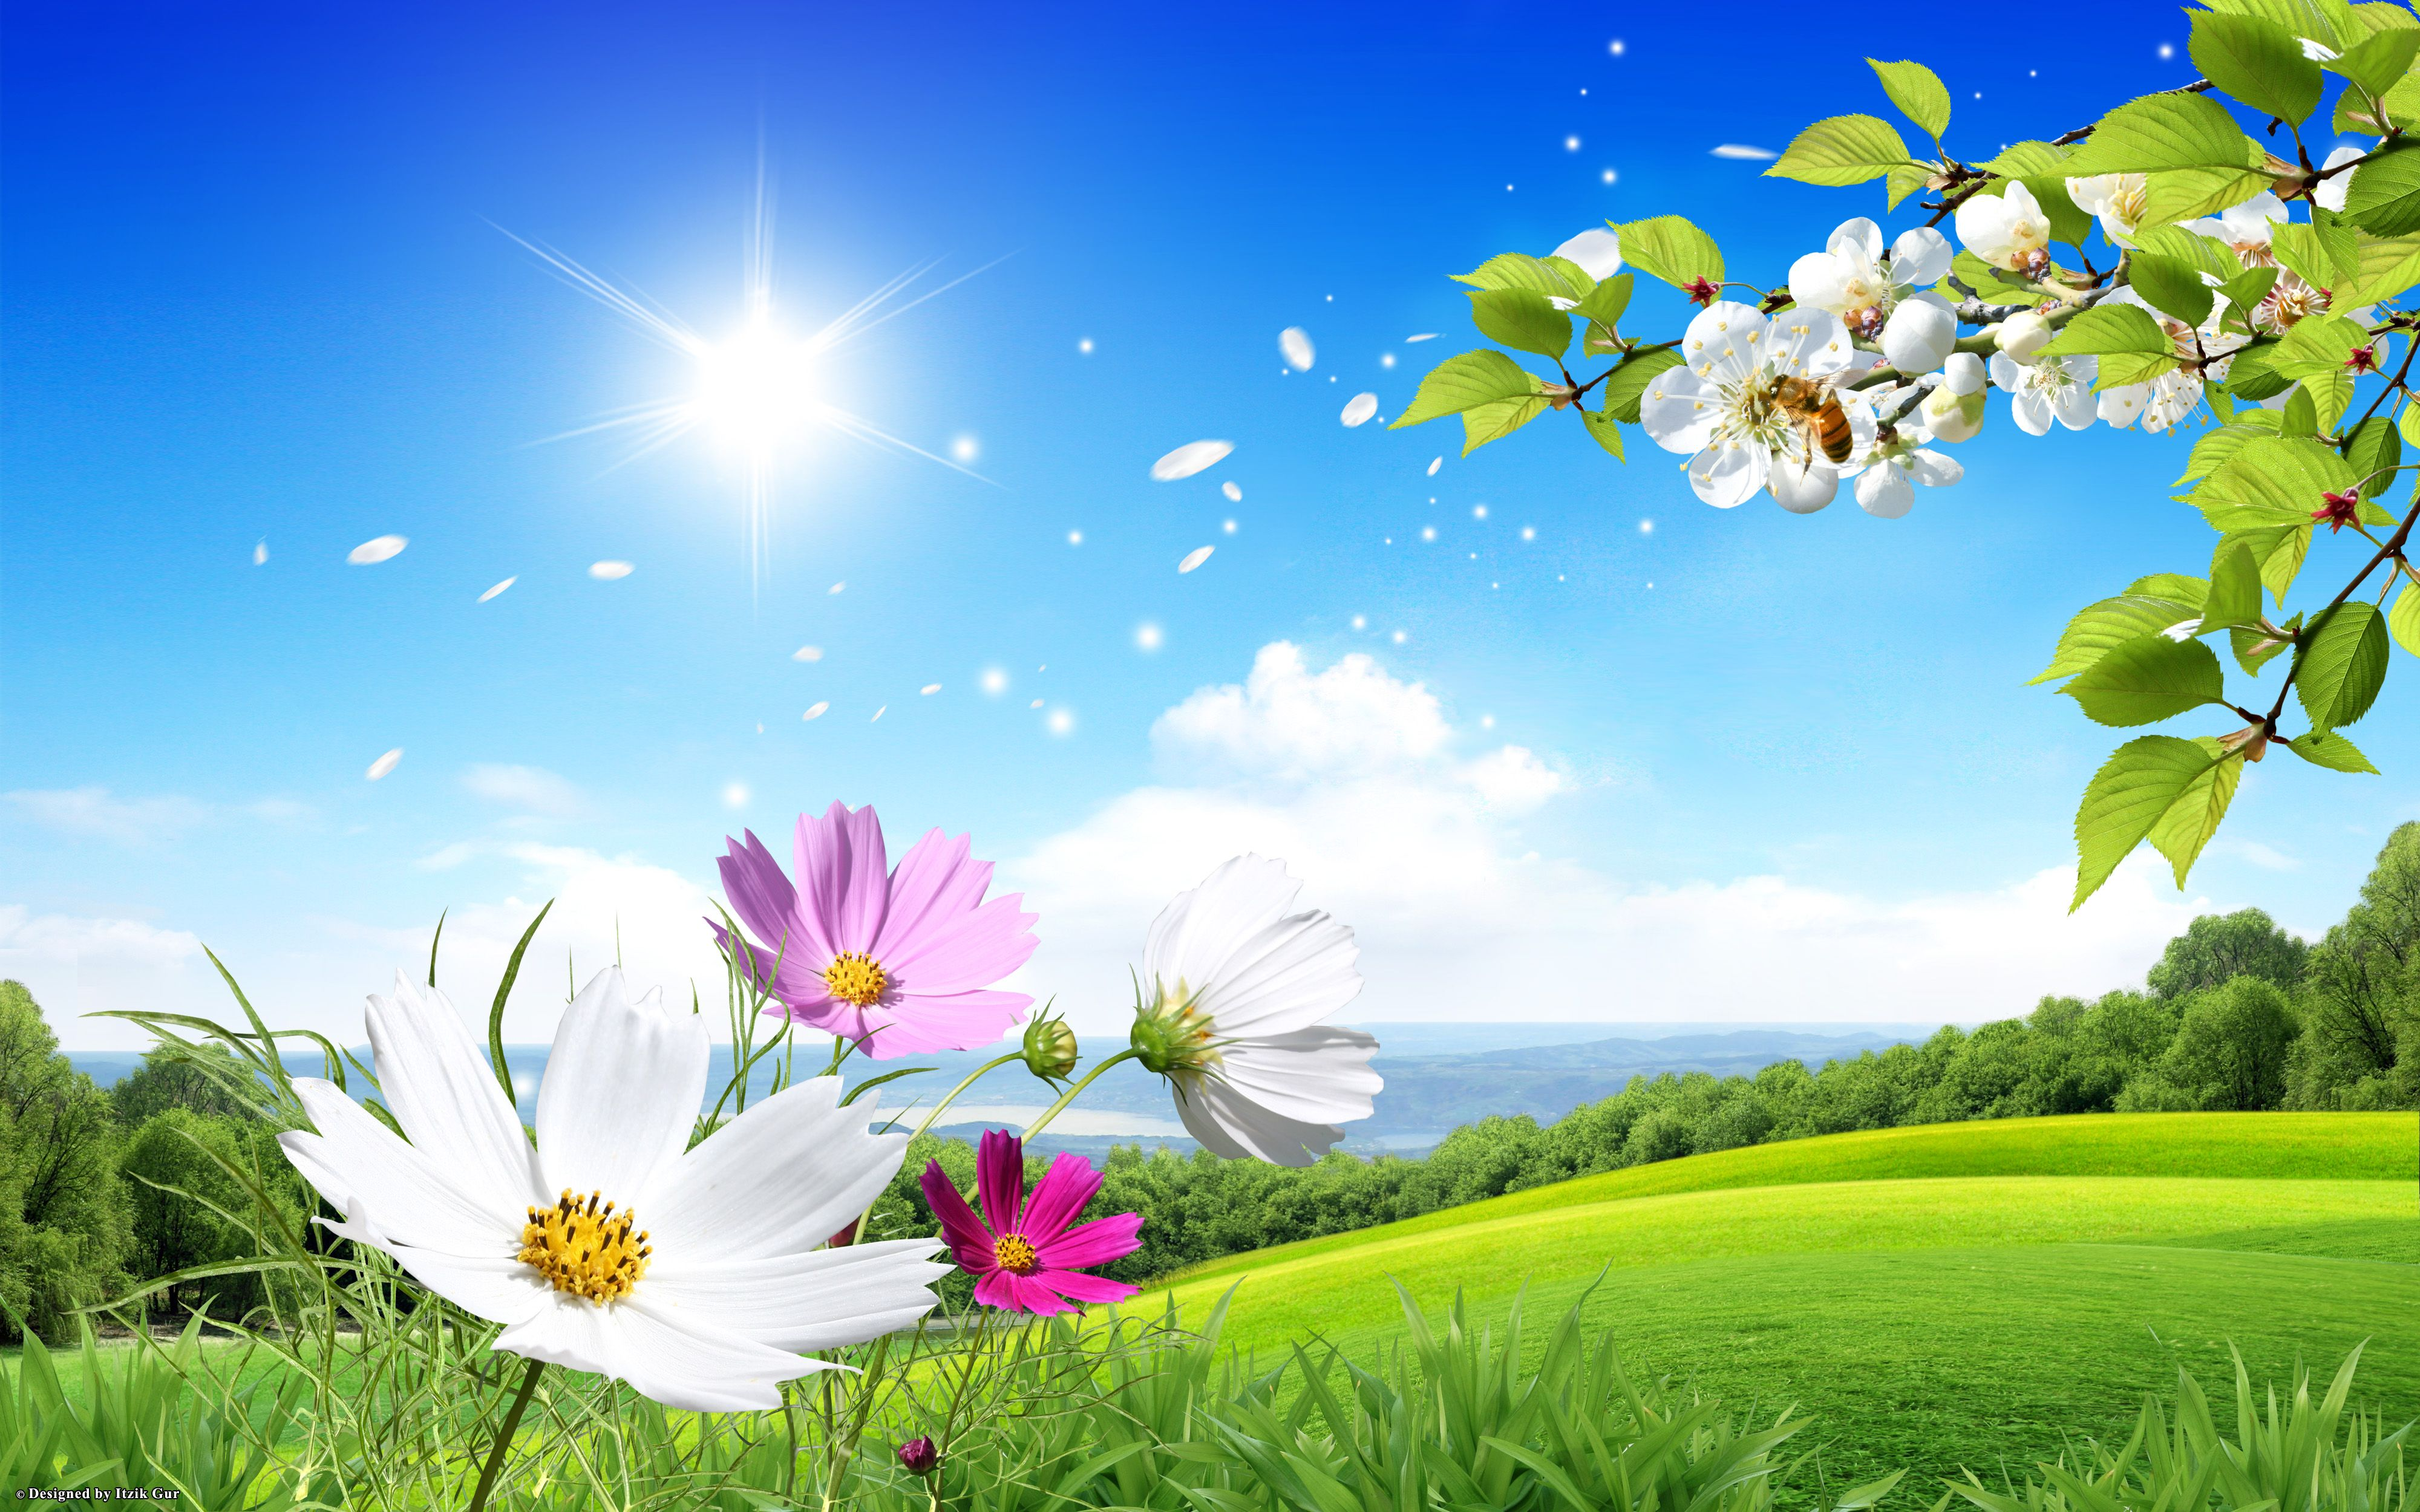 2019 year for girls- Images Nature for facebook cover page